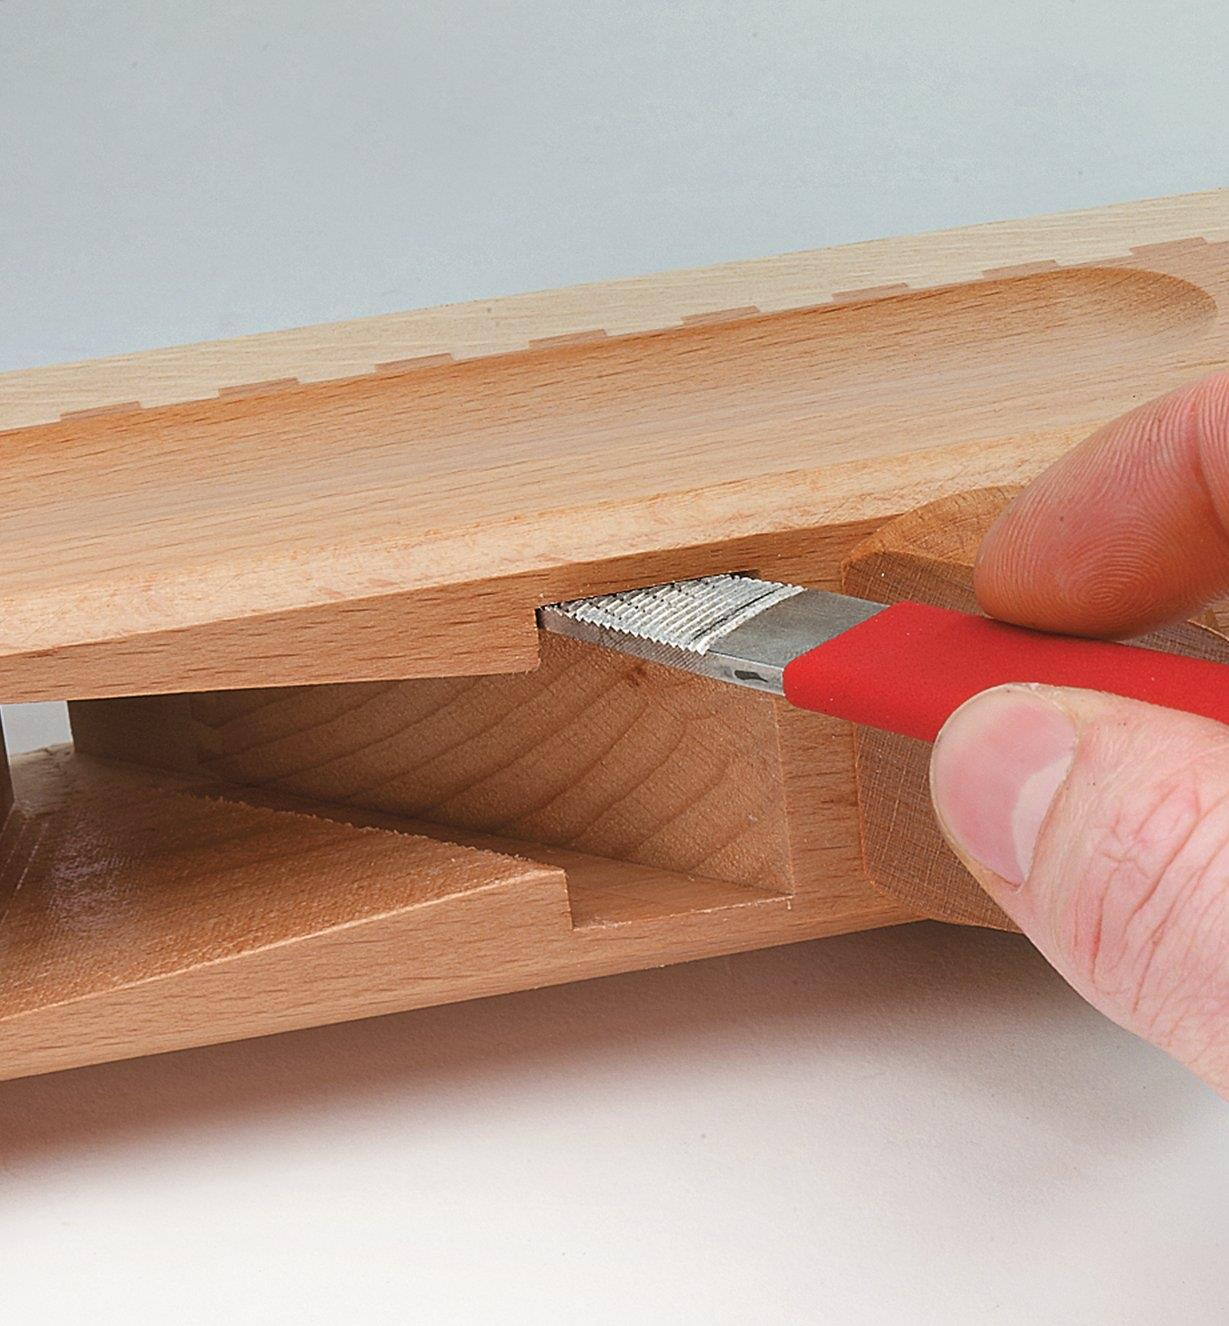 Smoothing the sides of a plane mortise with the X-Fine Side Plane-Maker's Float